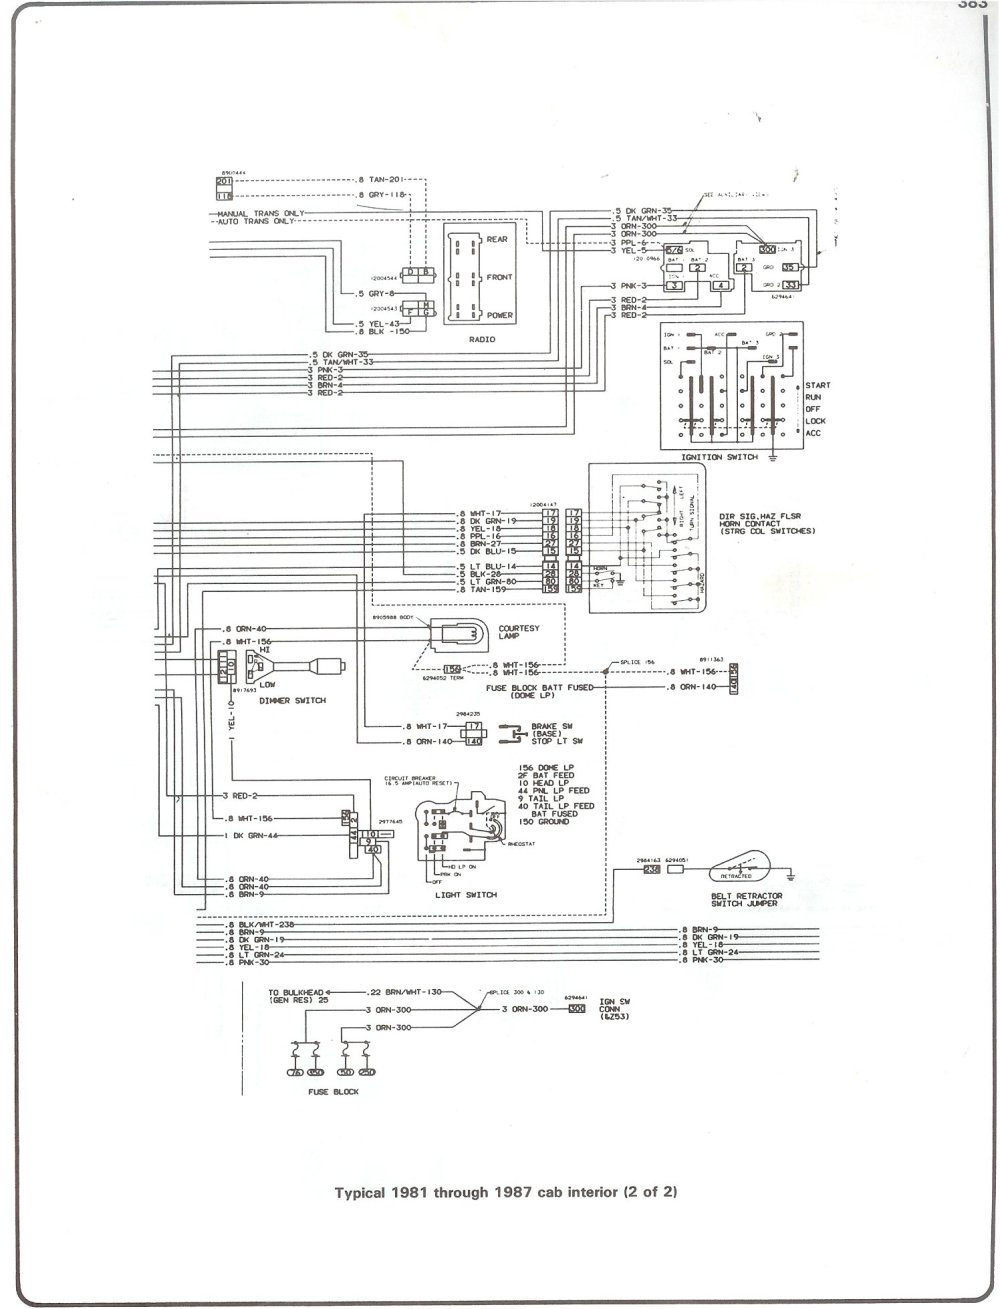 medium resolution of 1982 chevy truck courtesy light wiring diagram